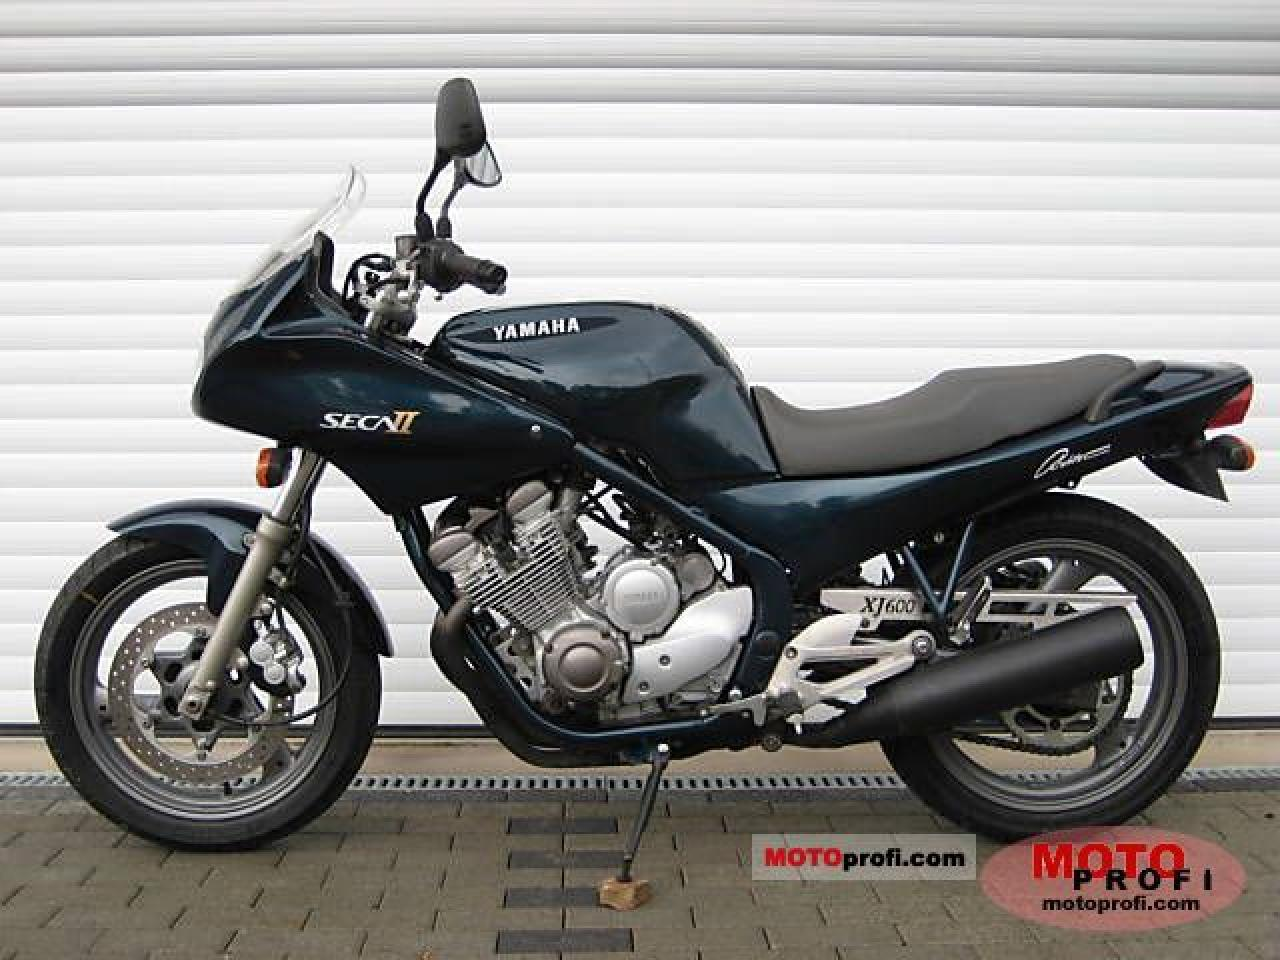 The yamaha xj600 diversion is a vauxhall astra diesel amongst motorcycles with all the worthiness (and dreariness)